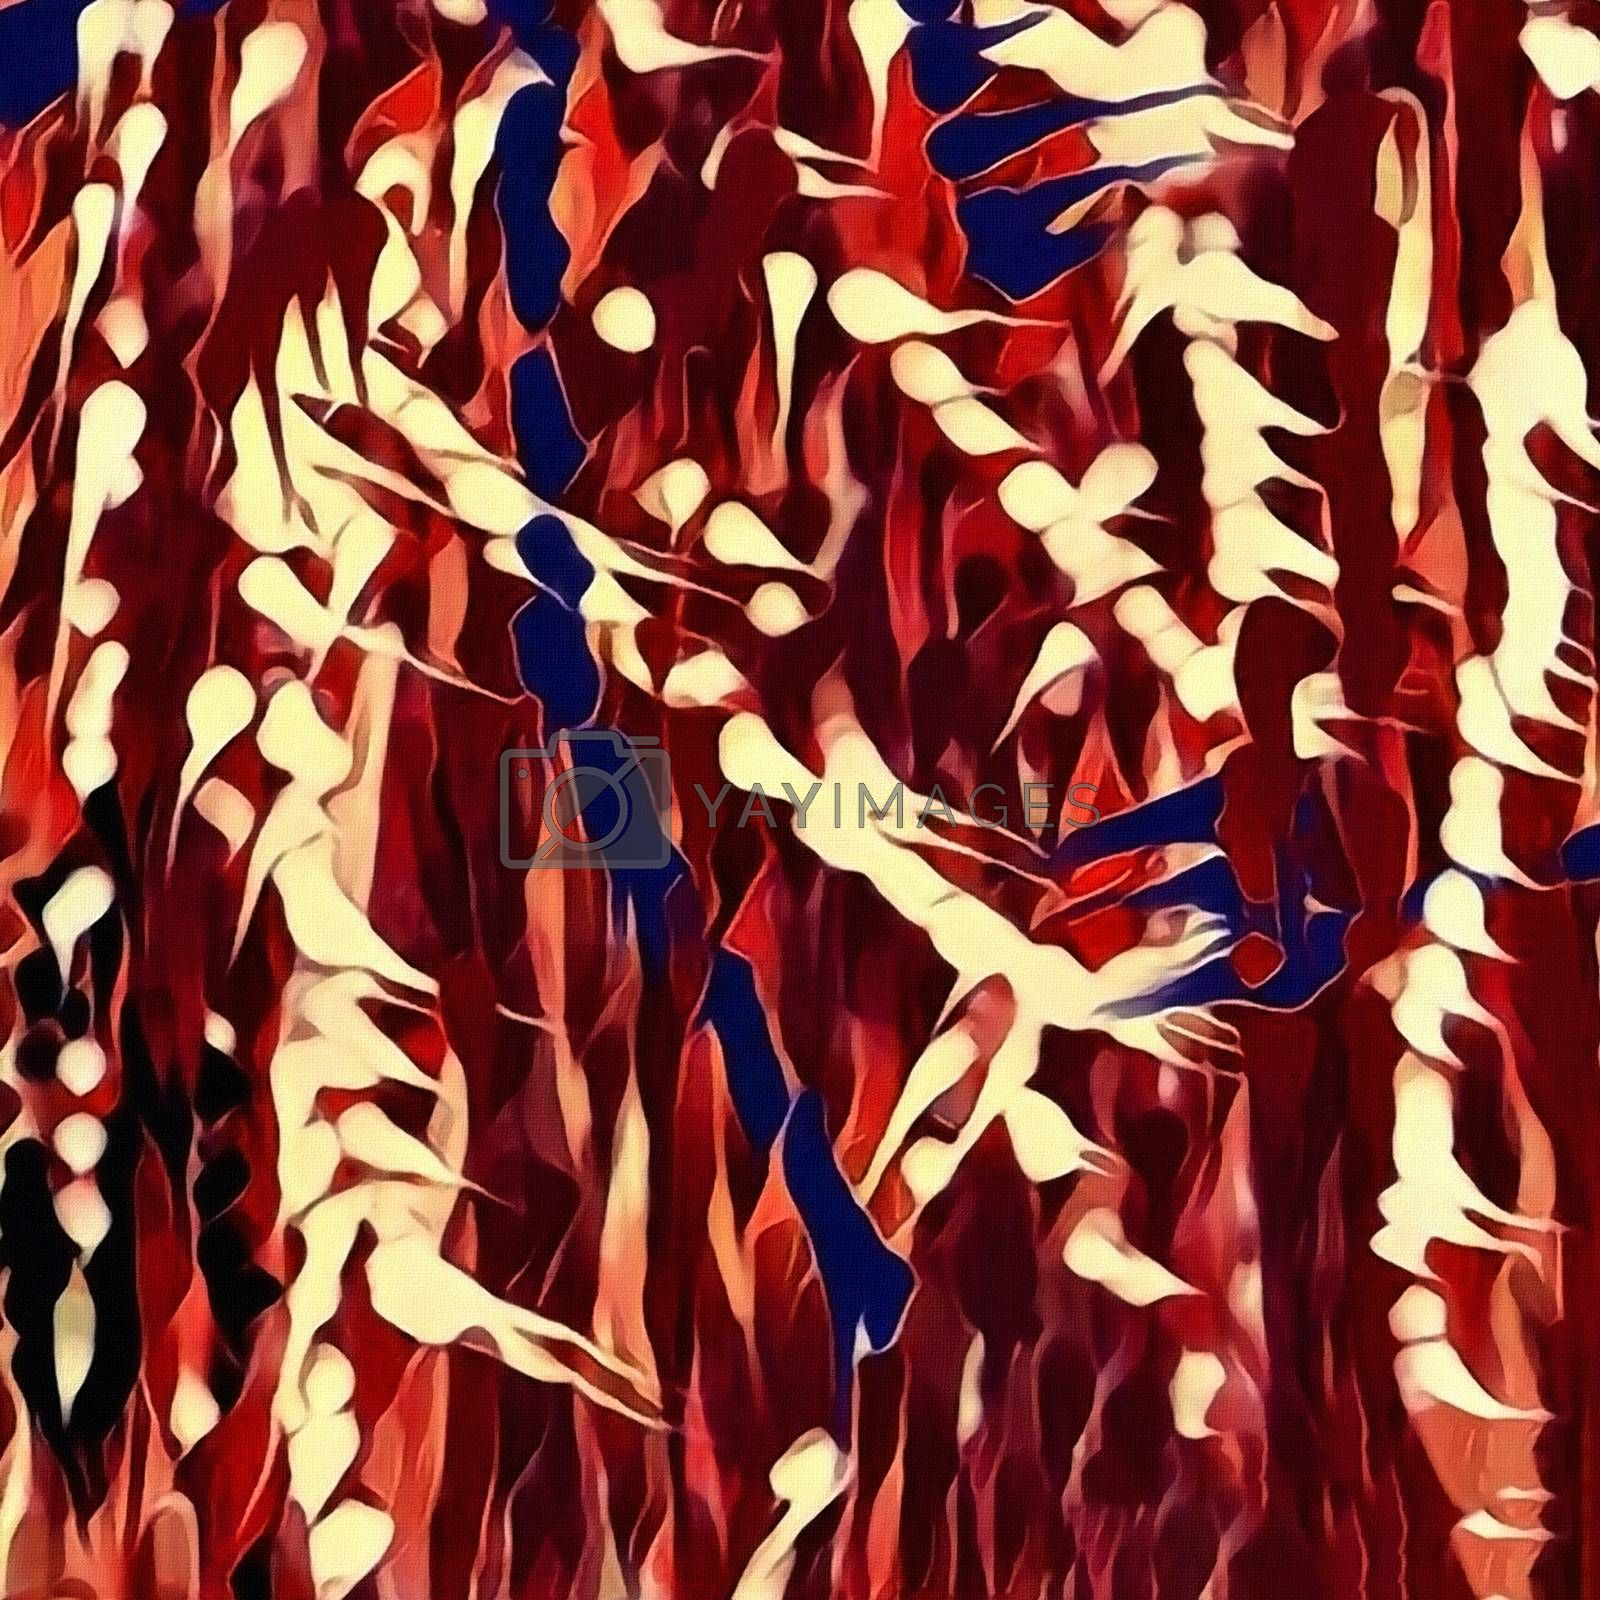 Abstract painting. Brush strokes. 3D rendering